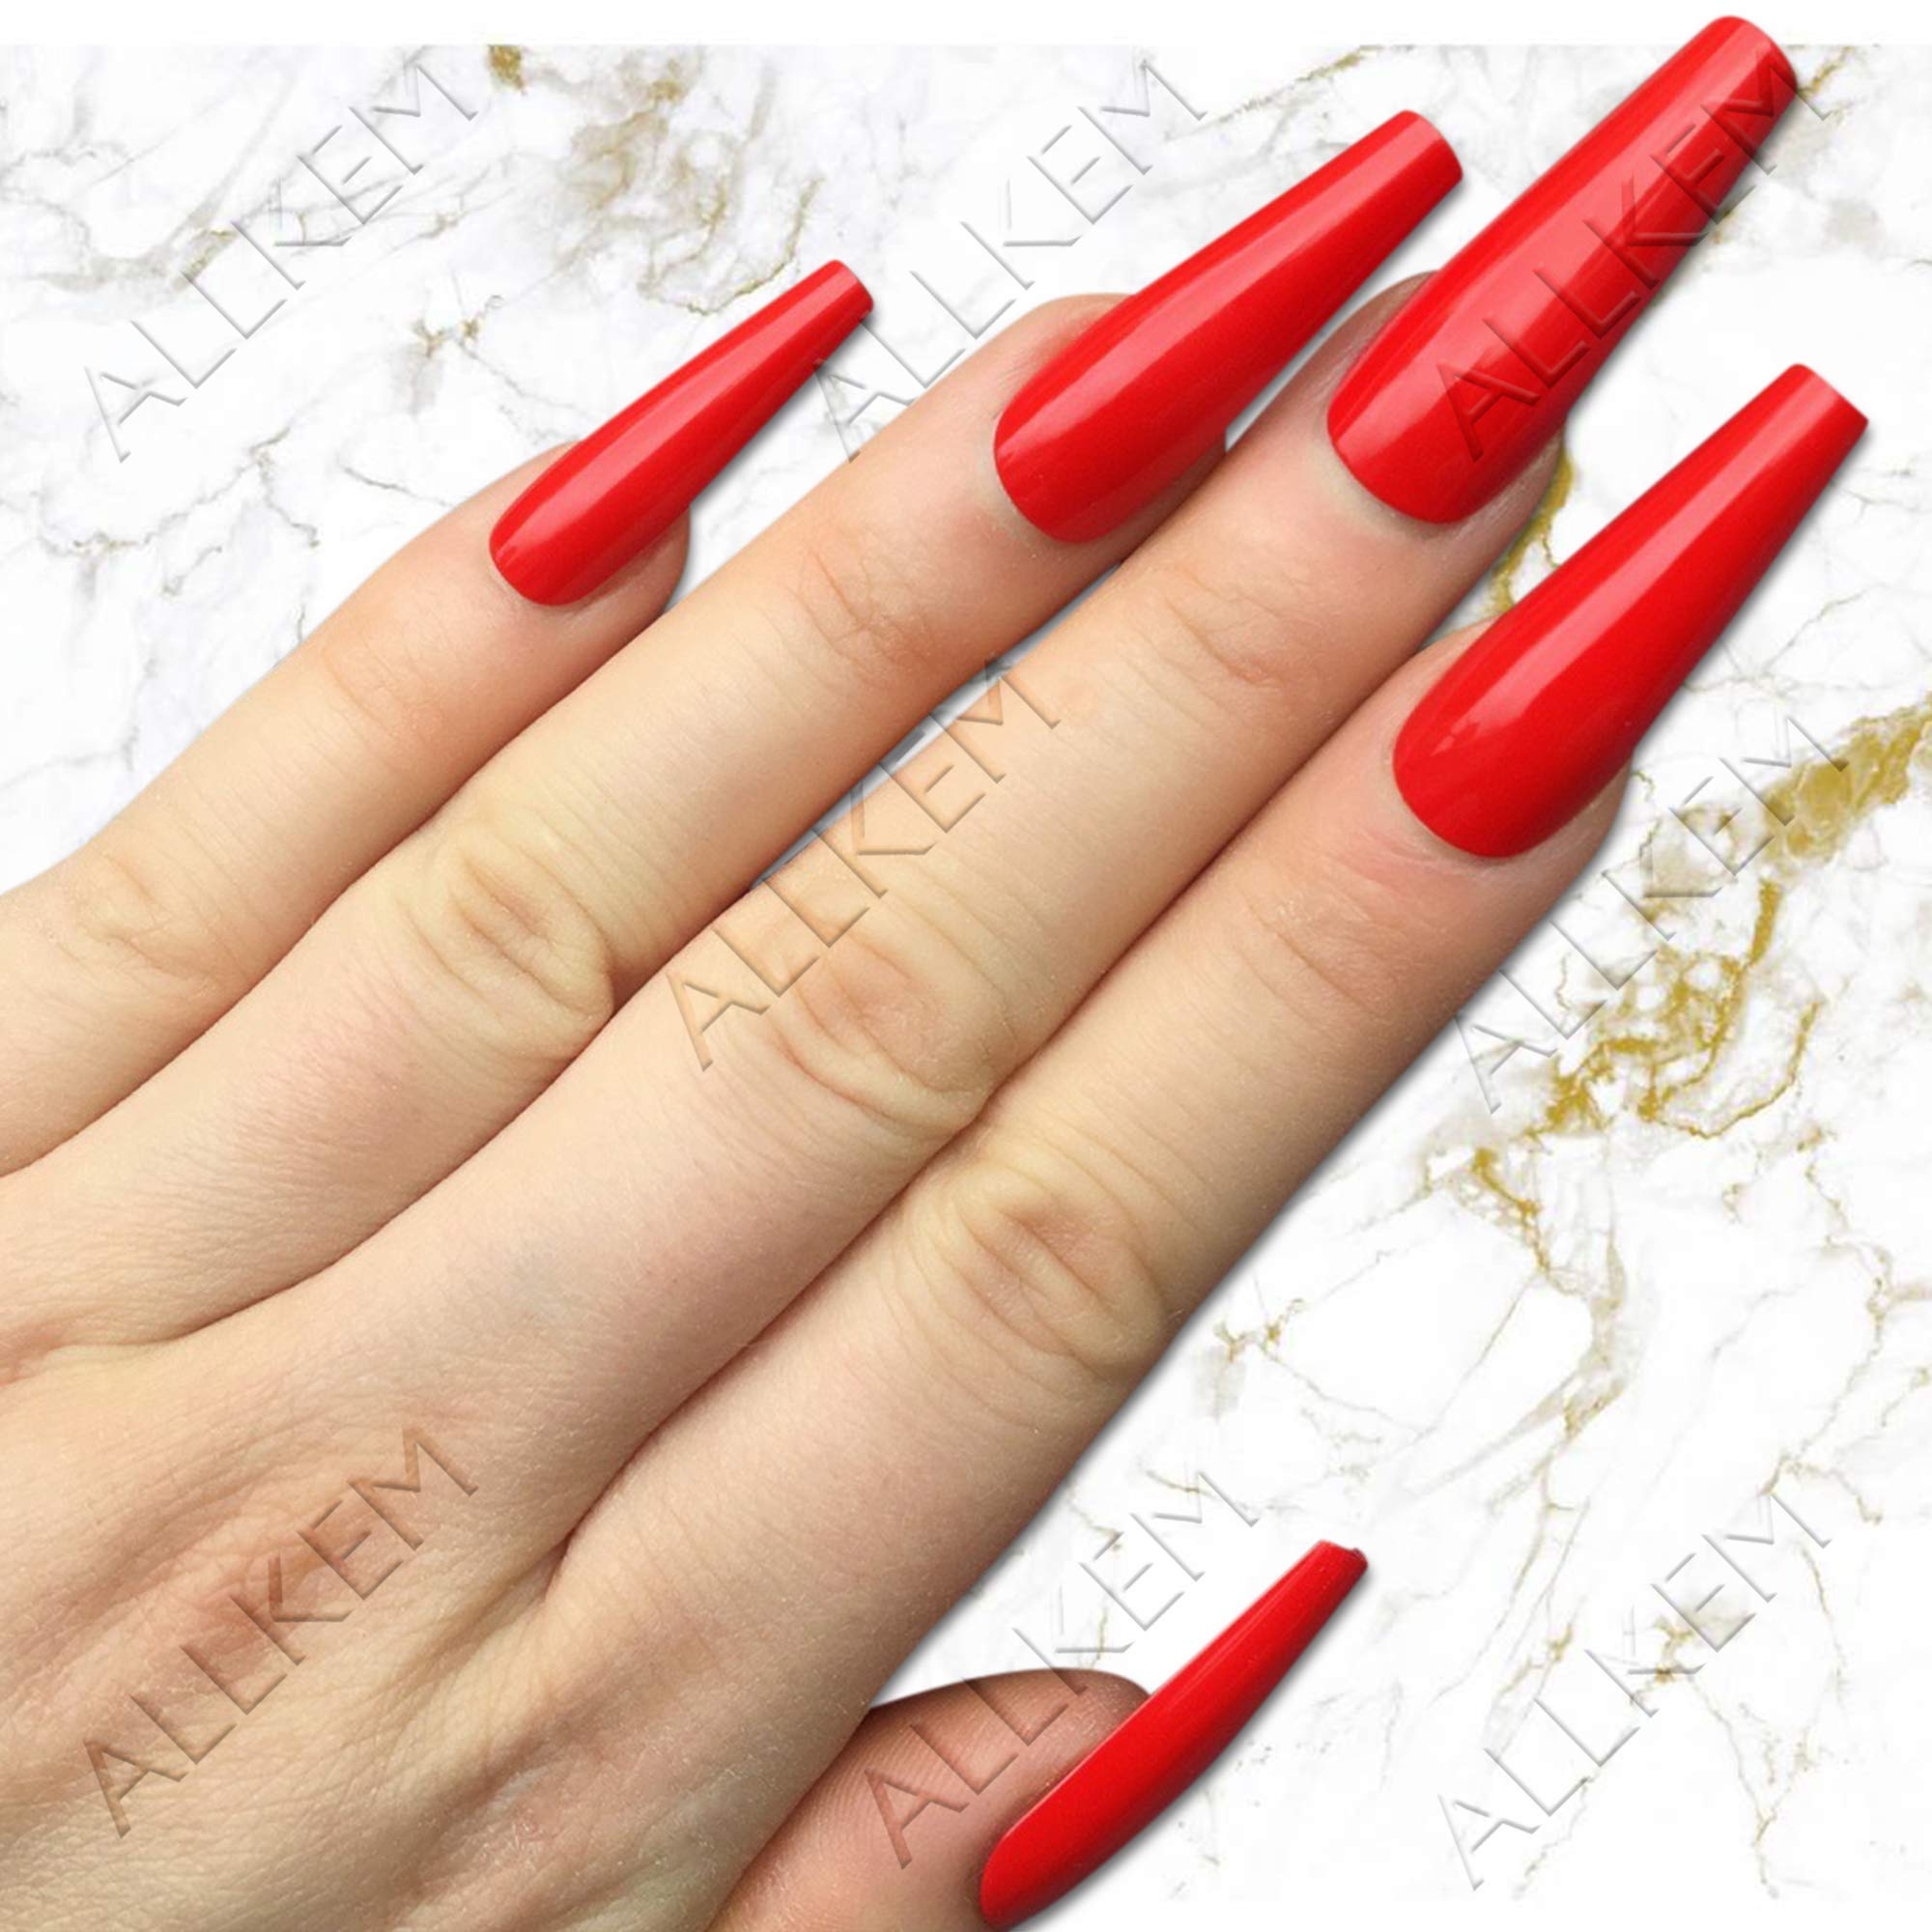 Hot Red Extra-Long Coffin 20 pcs false nails - Fake Nail Tips 10 sizes Full Coverage by VM Direct